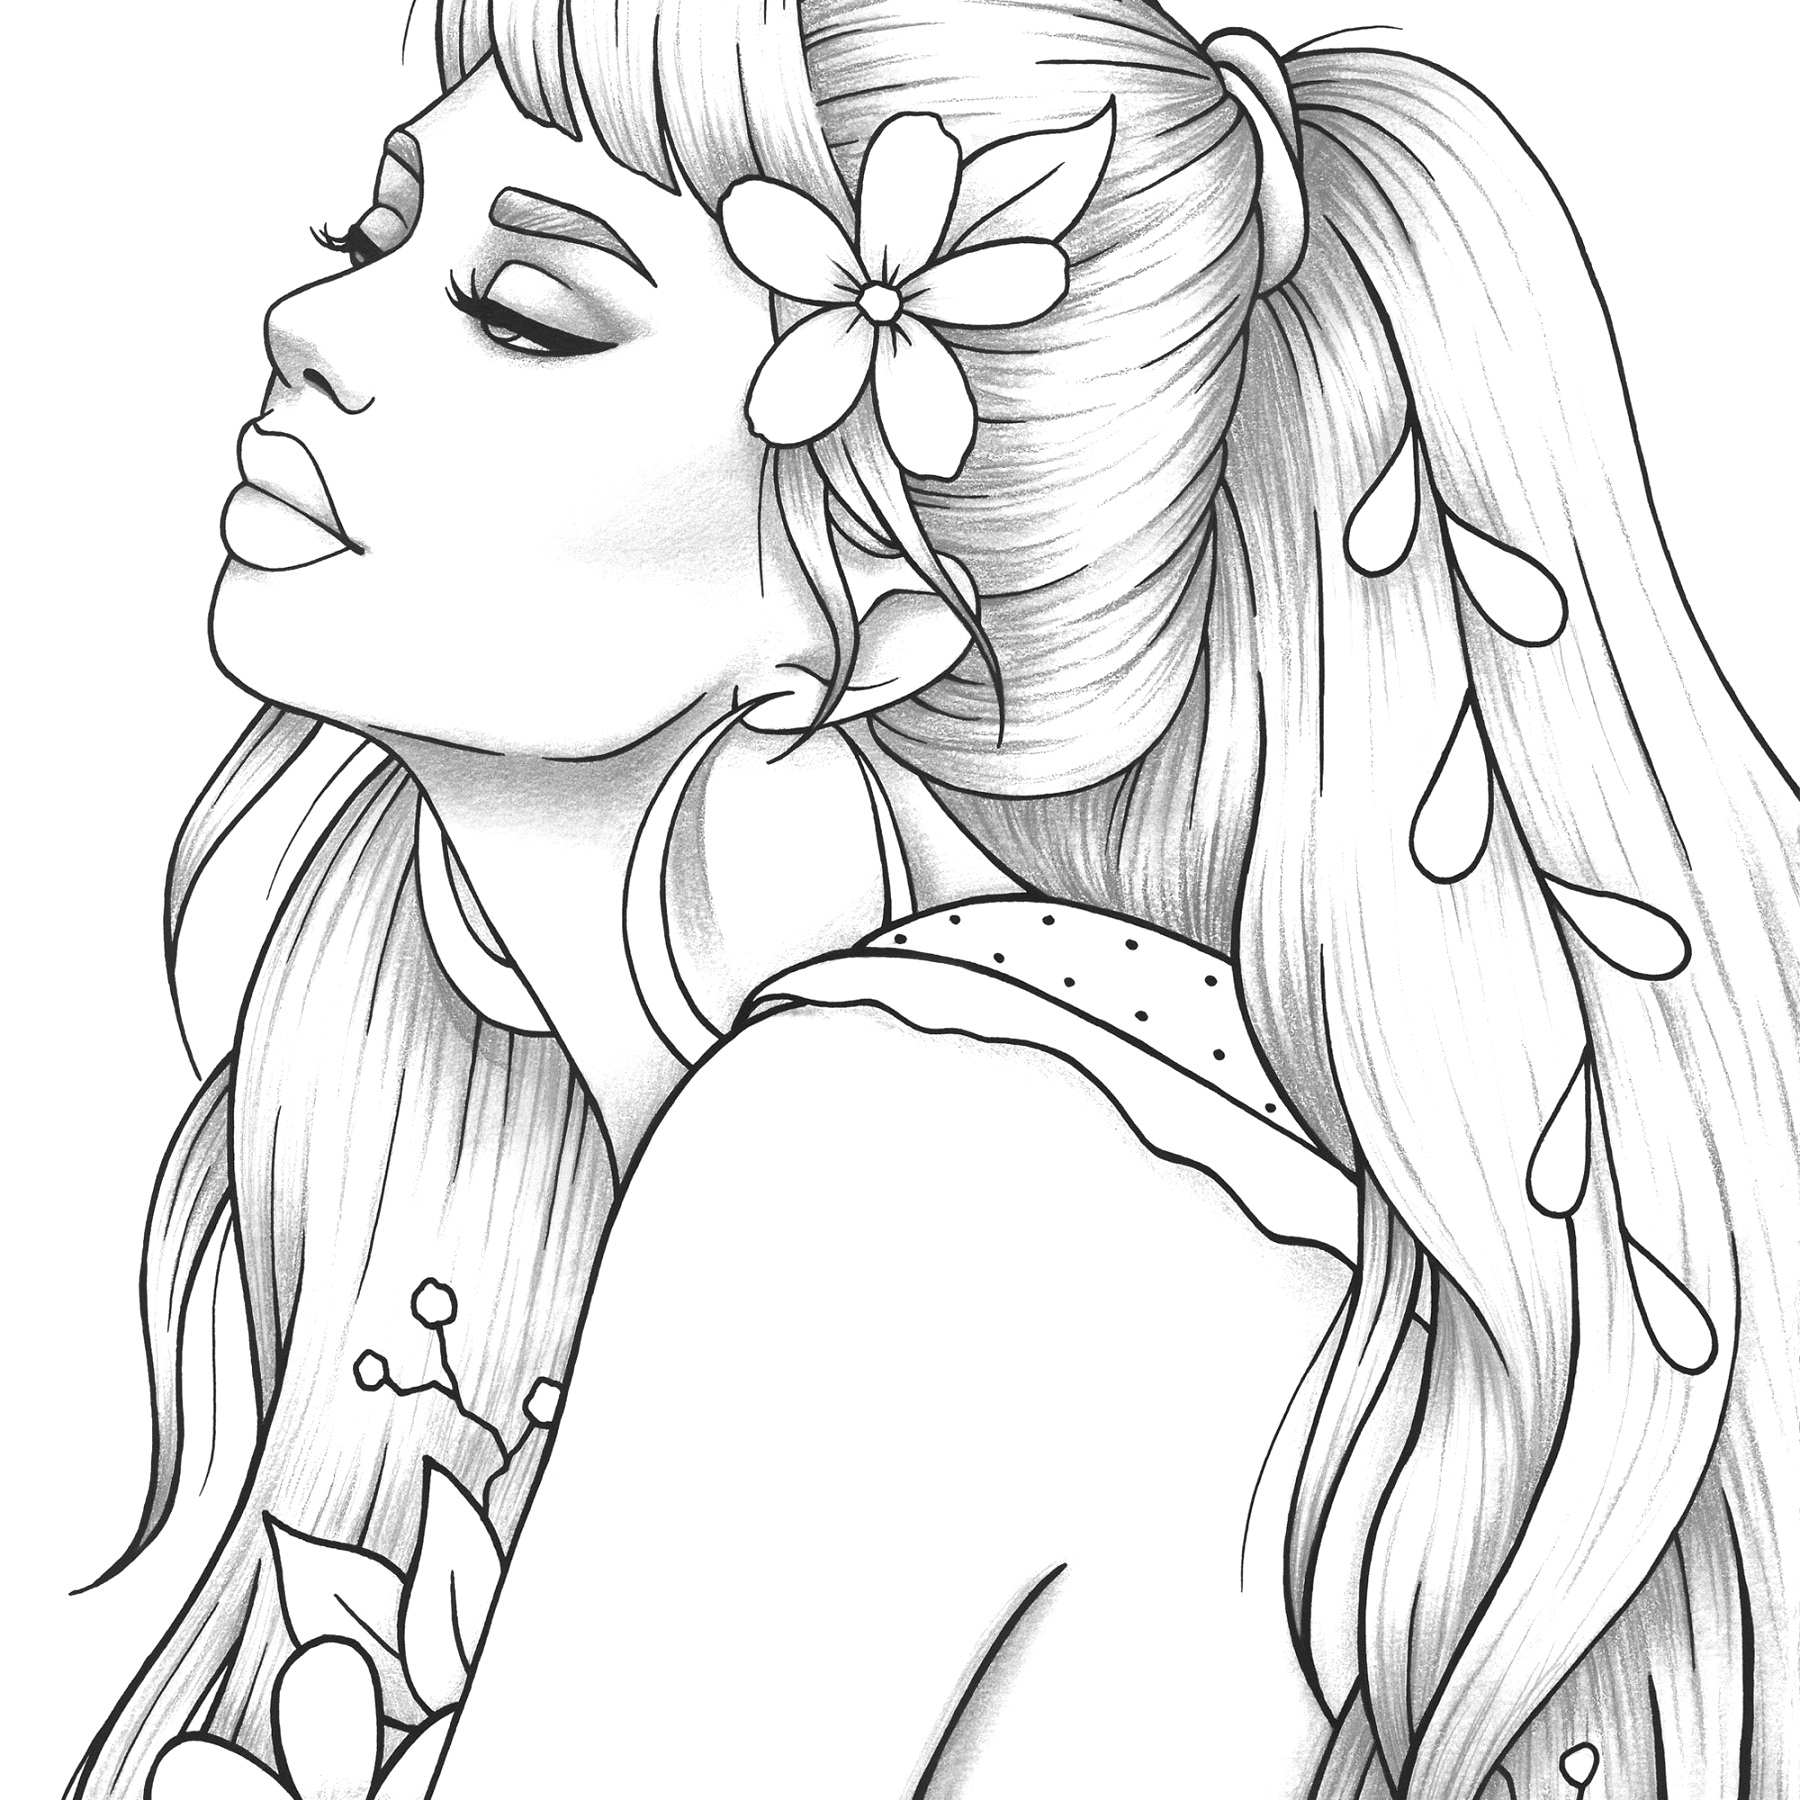 Enjoyable printable coloring pages to color your life